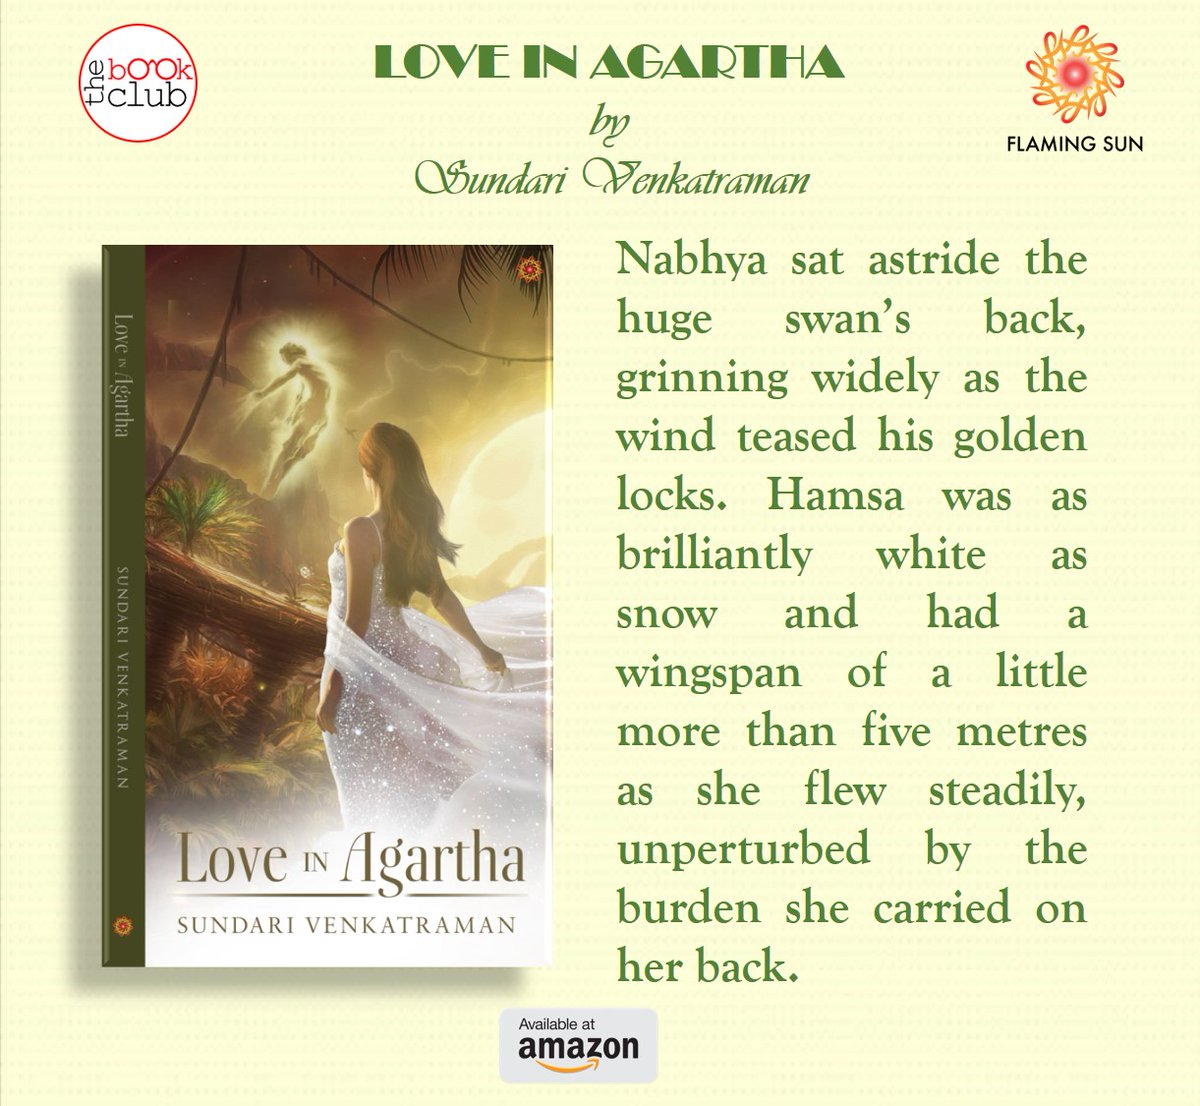 #LoveinAgartha #kindle #indieauthor #indiebooks #romance #romancenovels #KindleUnlimited Hamsa was as brilliantly white as snow and had a wingspan of a little more than five metres as she flew steadily, unperturbed by the burden she carried on her back. https://www.amazon.ca/dp/B083G8HHW5pic.twitter.com/KmvNAMl8rv